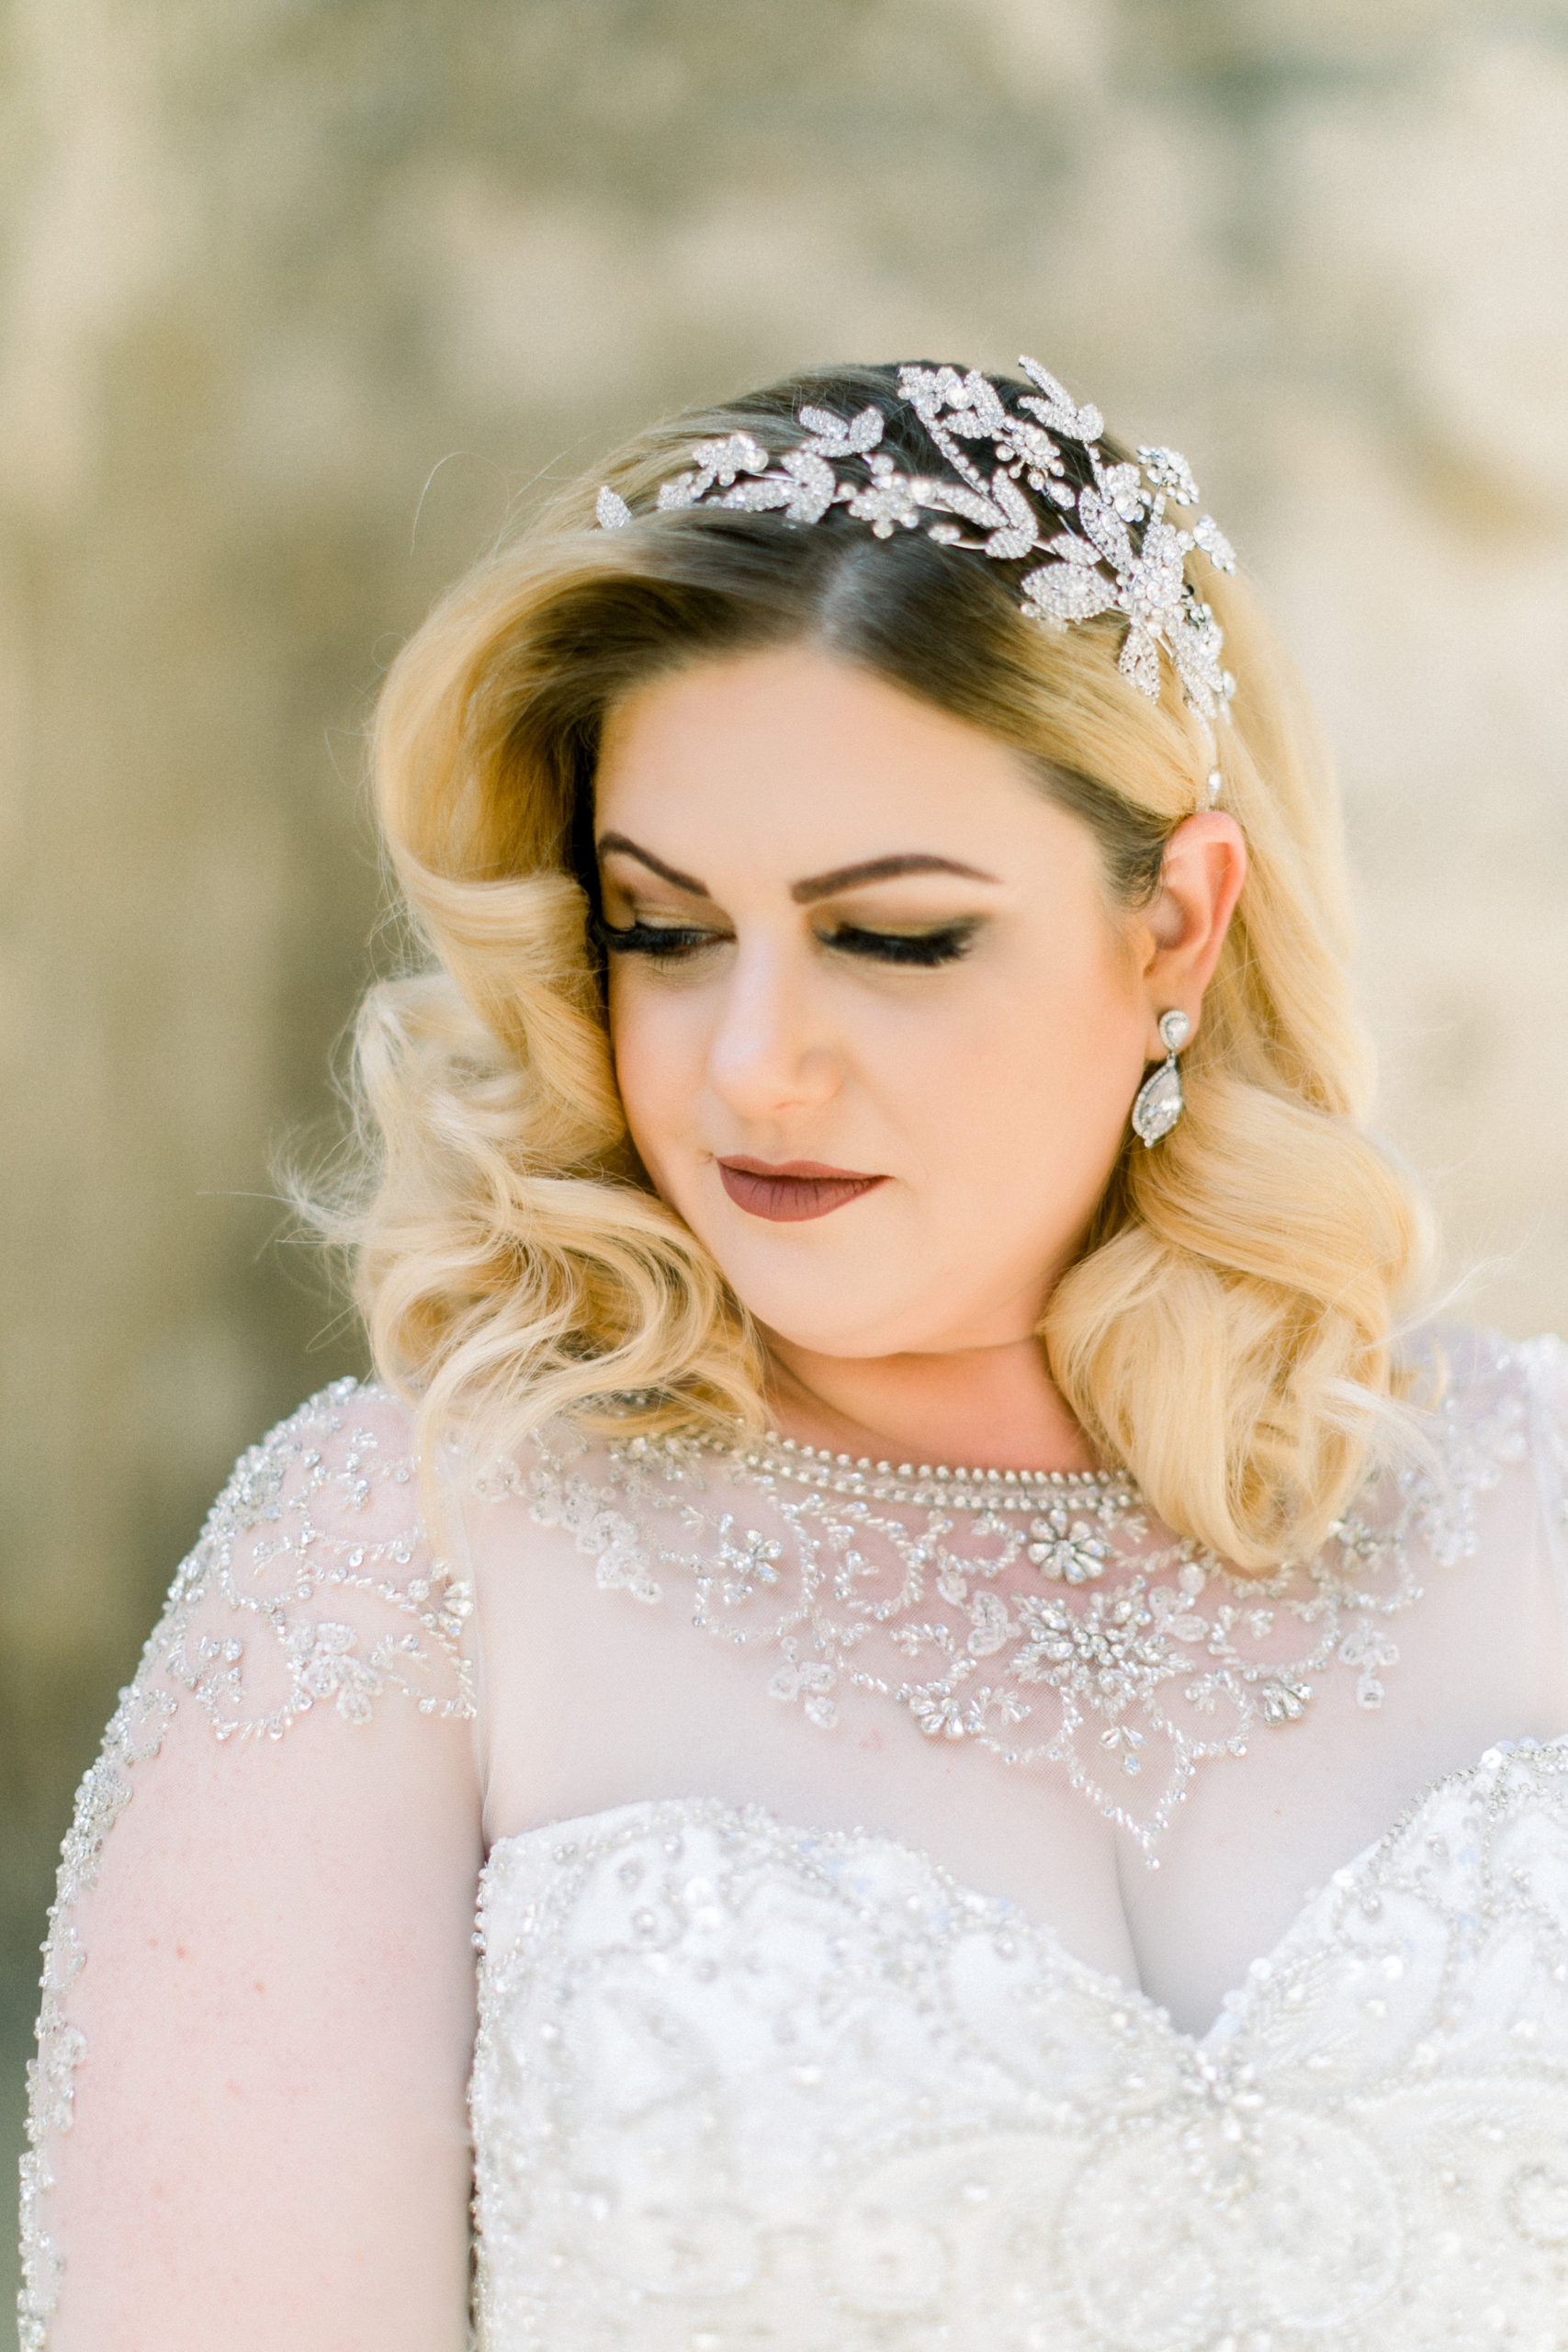 bride portrait with rhinestone headpiece and beaded long sleeves and neckline